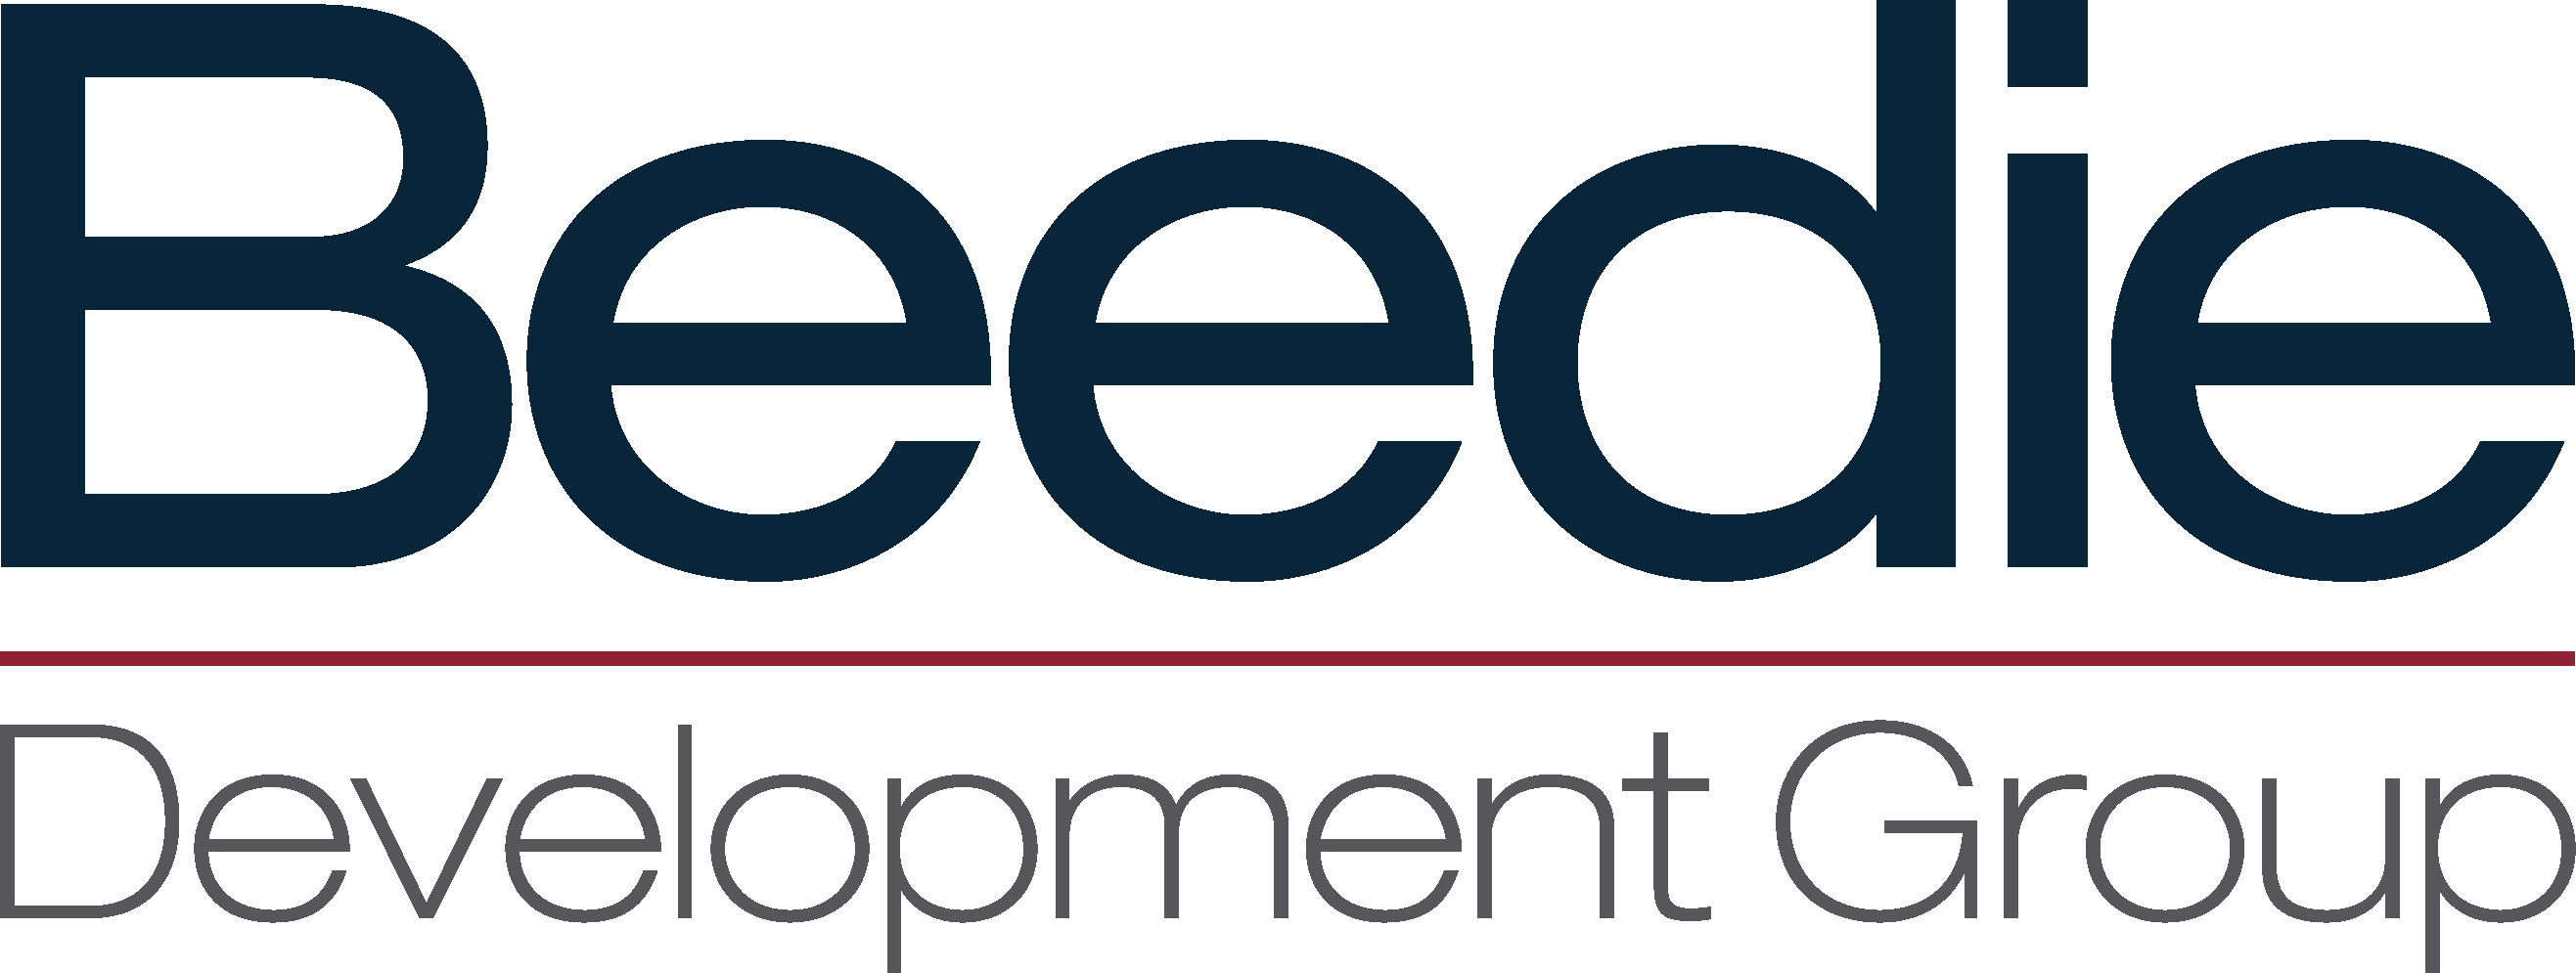 BEEDIE_developgroup_final_logo